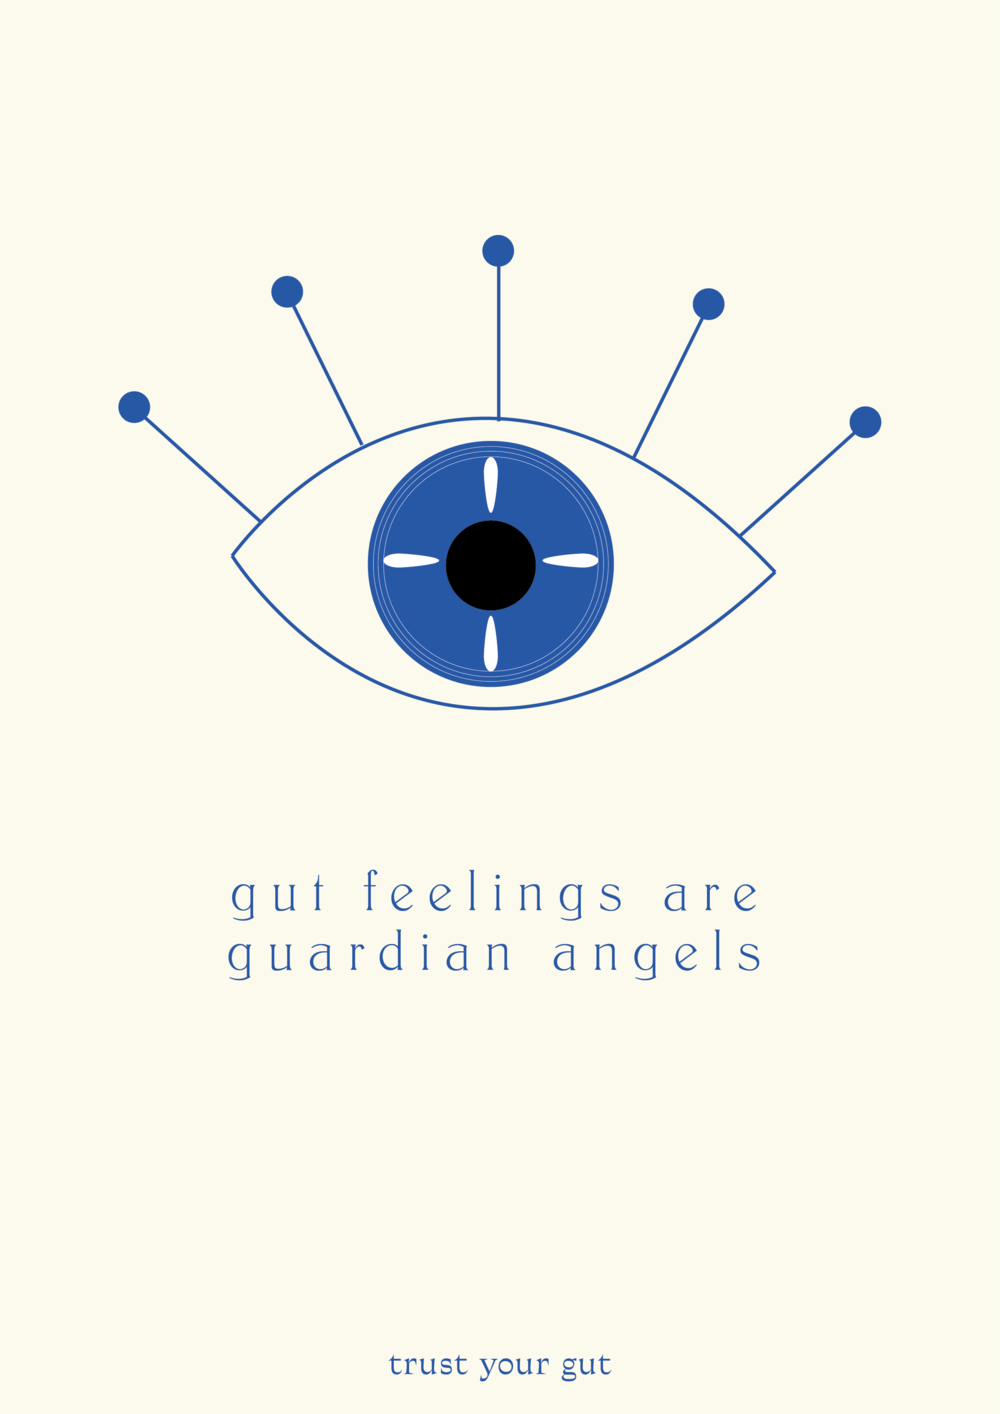 gut feelings are guardian angels // affirmations (phylleli design studio and blog)